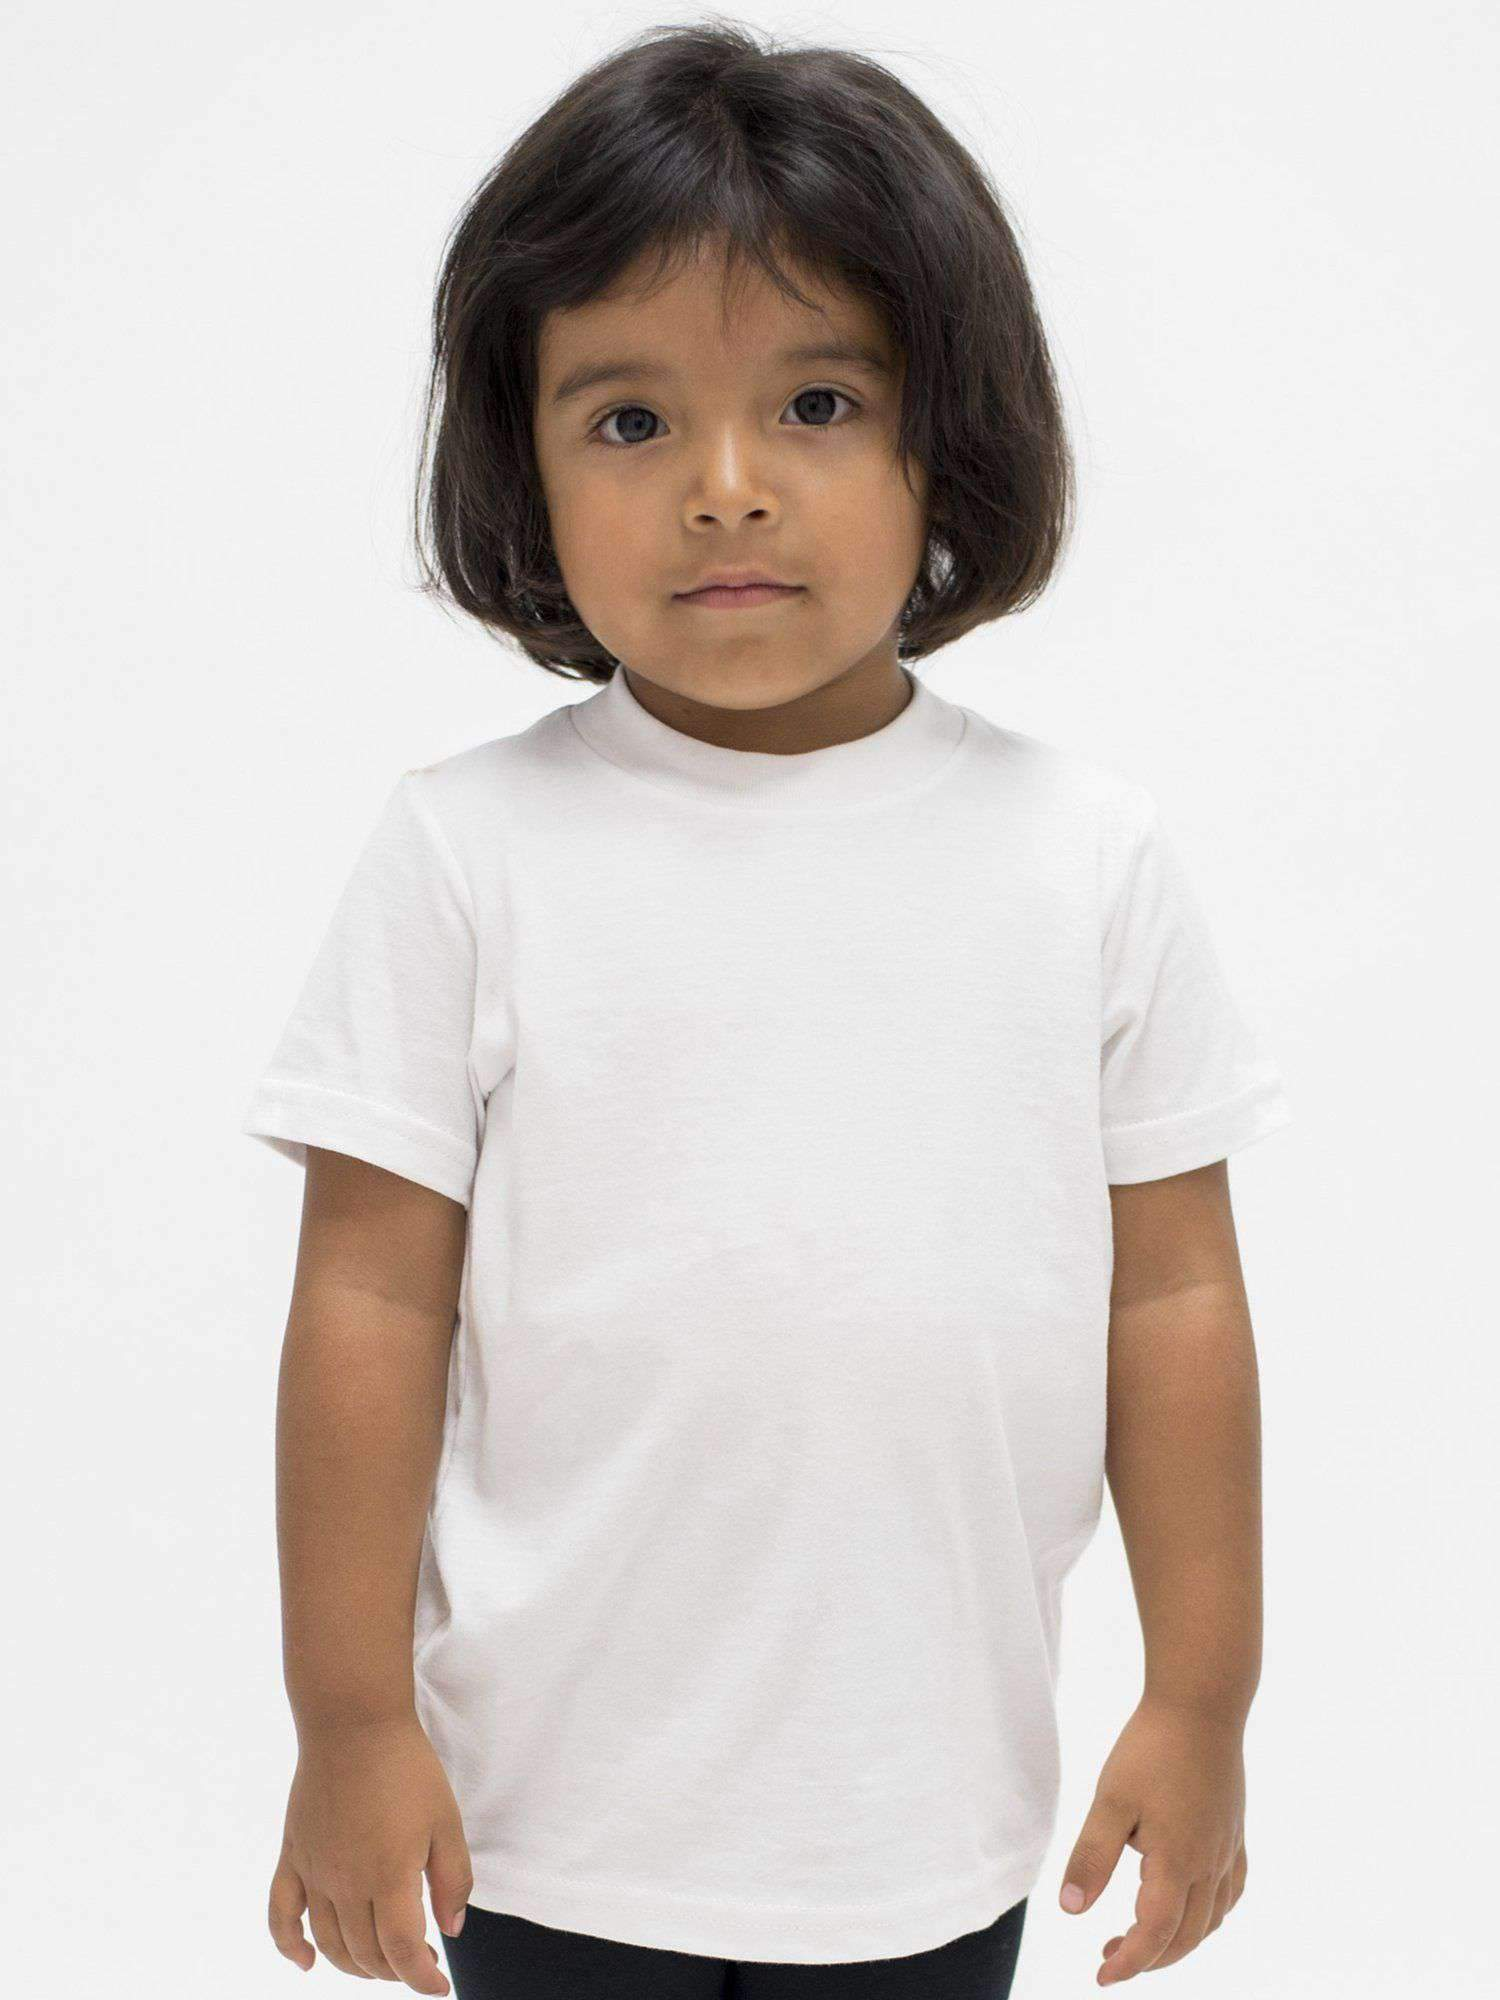 21005 - Toddler Short Sleeve Fine Jersey Tee Kids Los Angeles Apparel White 2